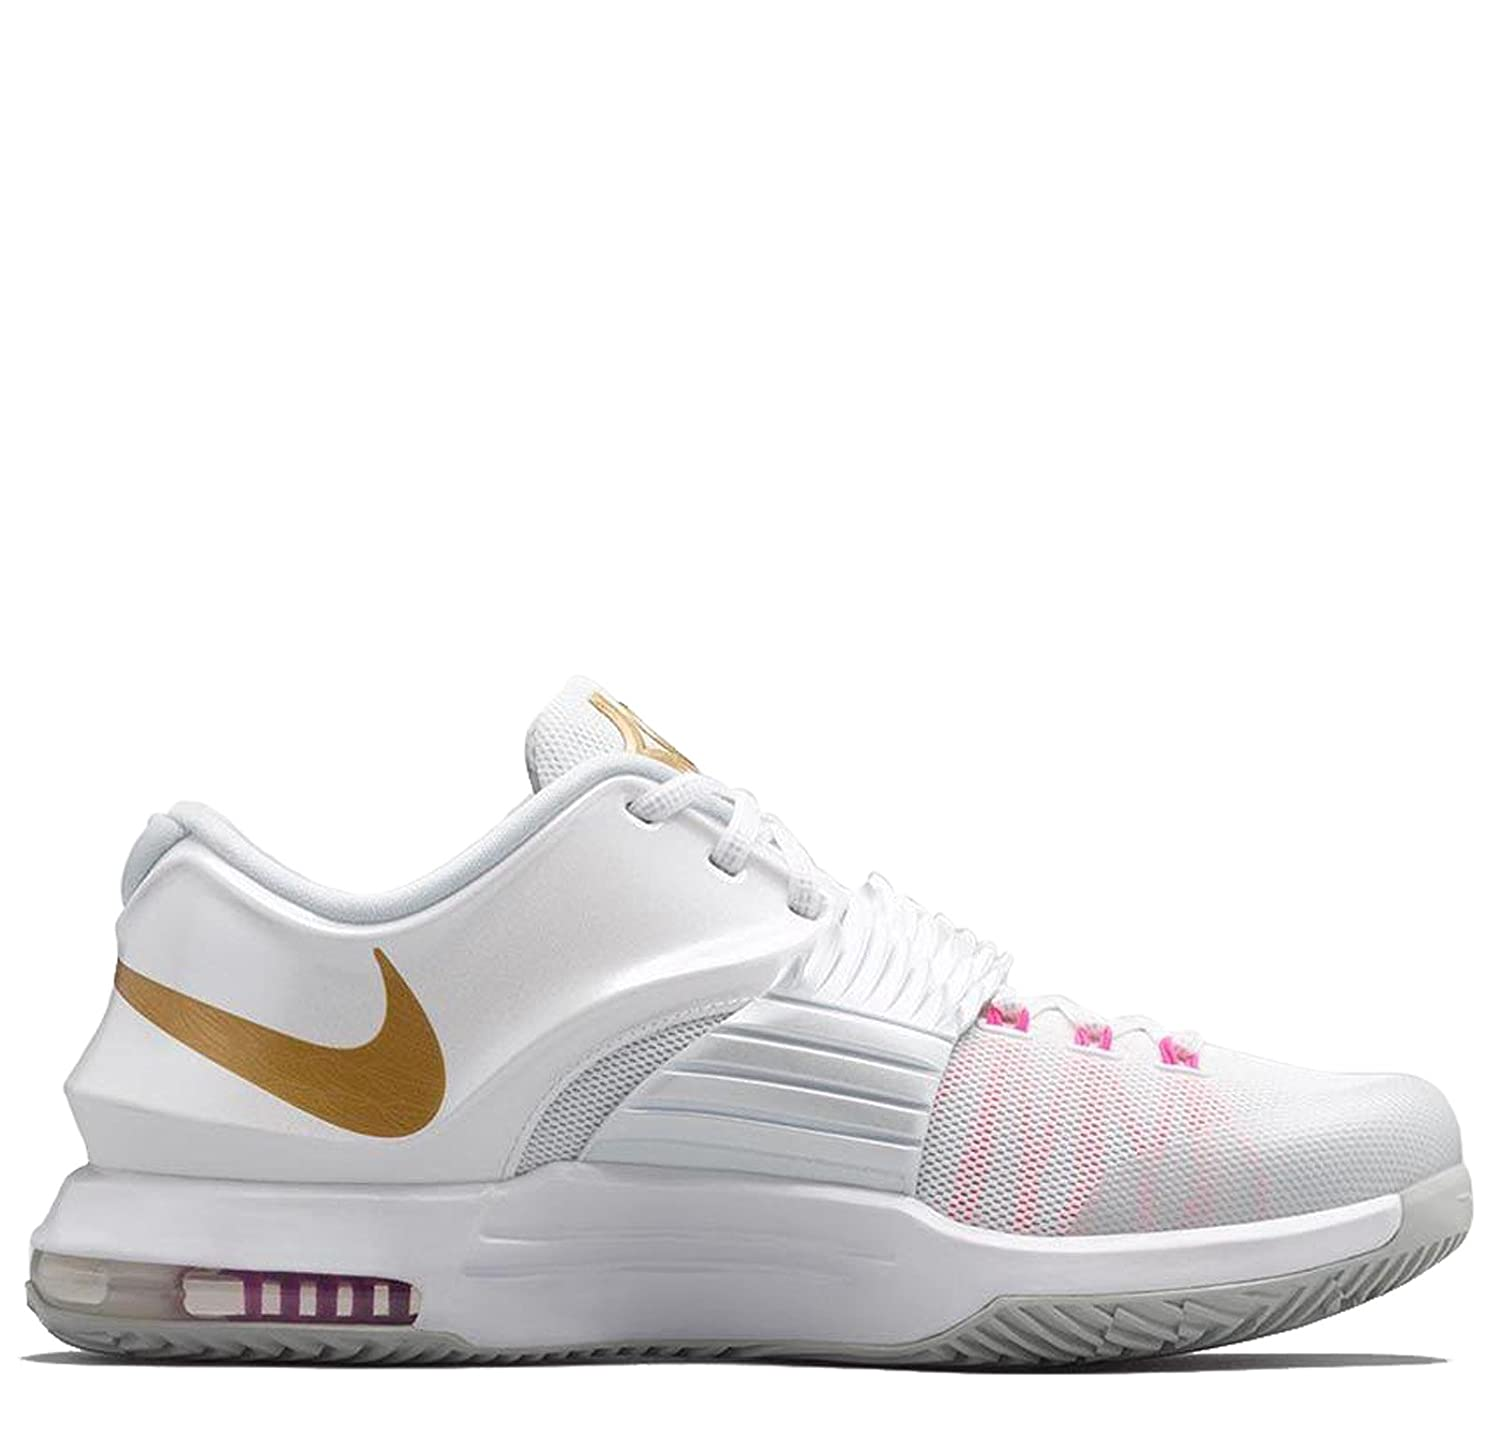 pretty nice e1c7b b243d Nike KD 7 PRM Aunt Pearl 706858-176 White: Buy Online at Low ...